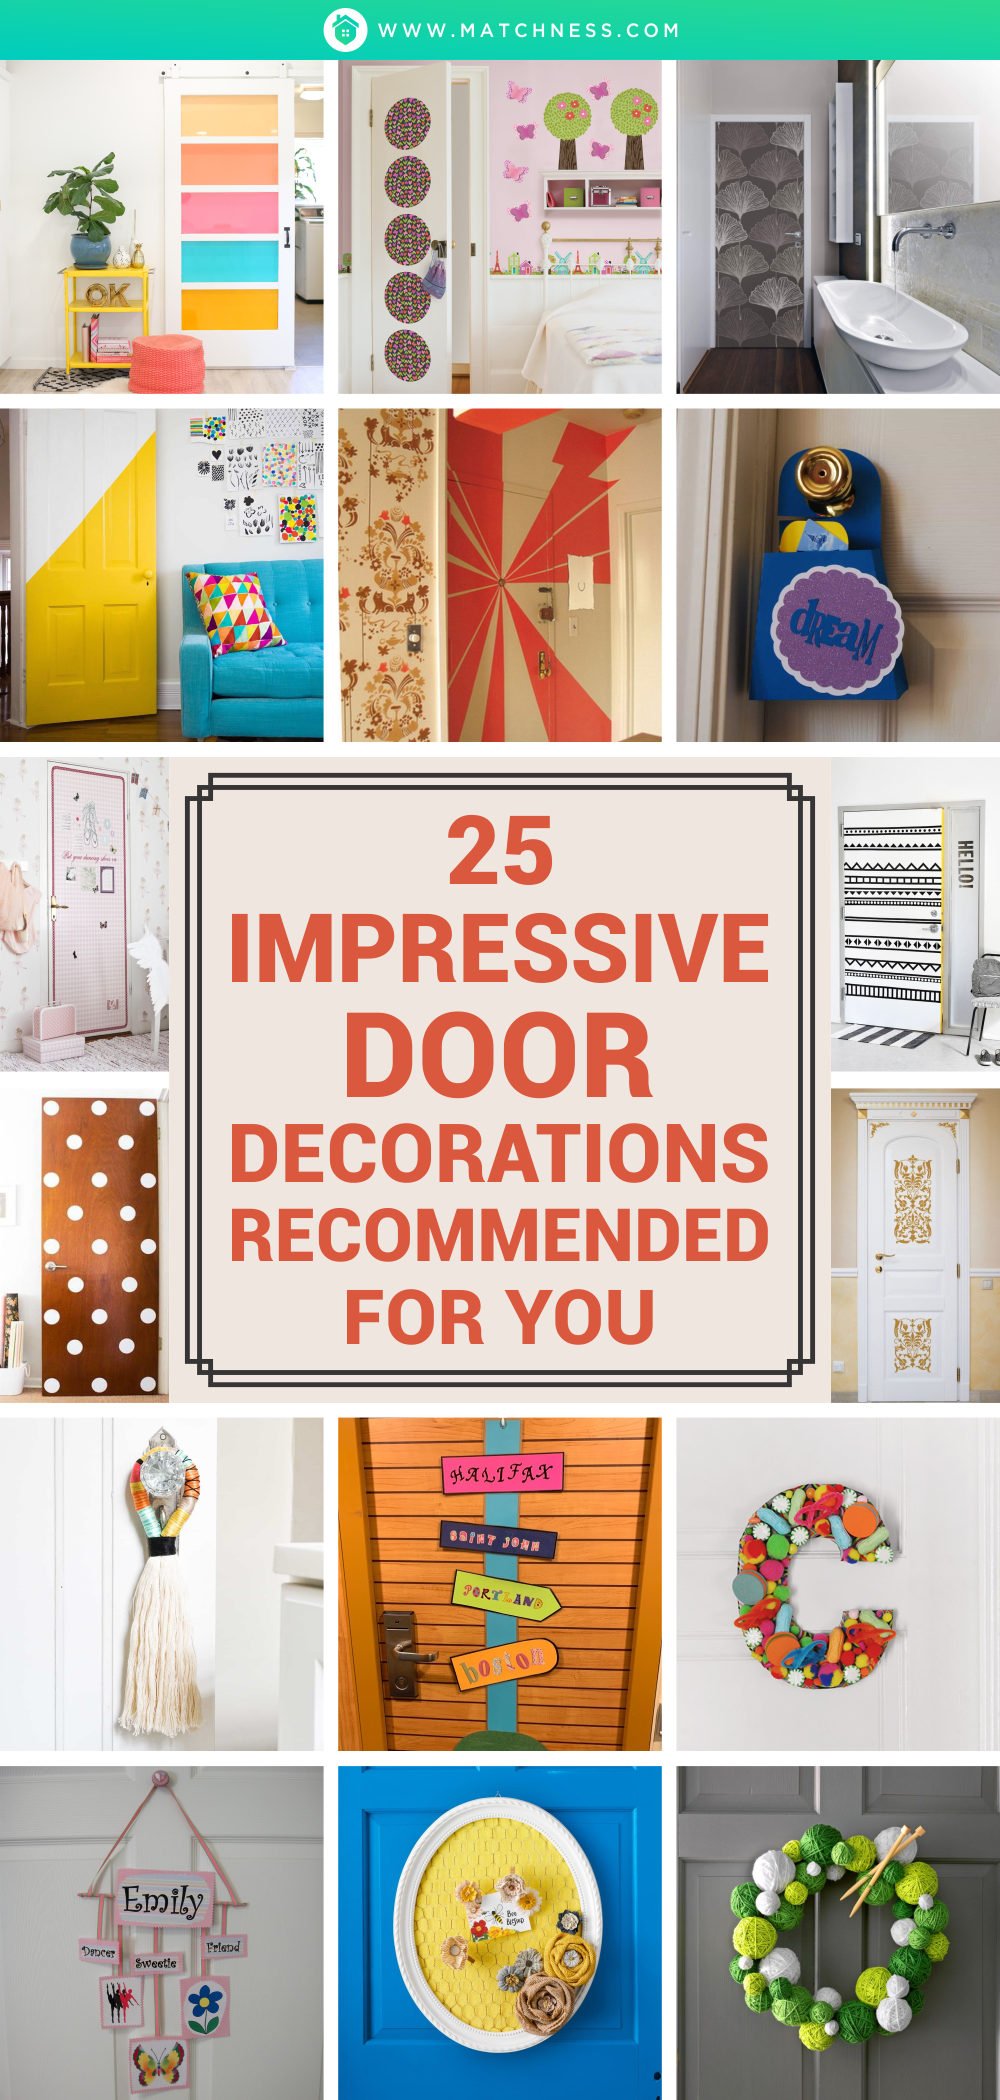 25-impressive-door-decorations-recommended-for-you1